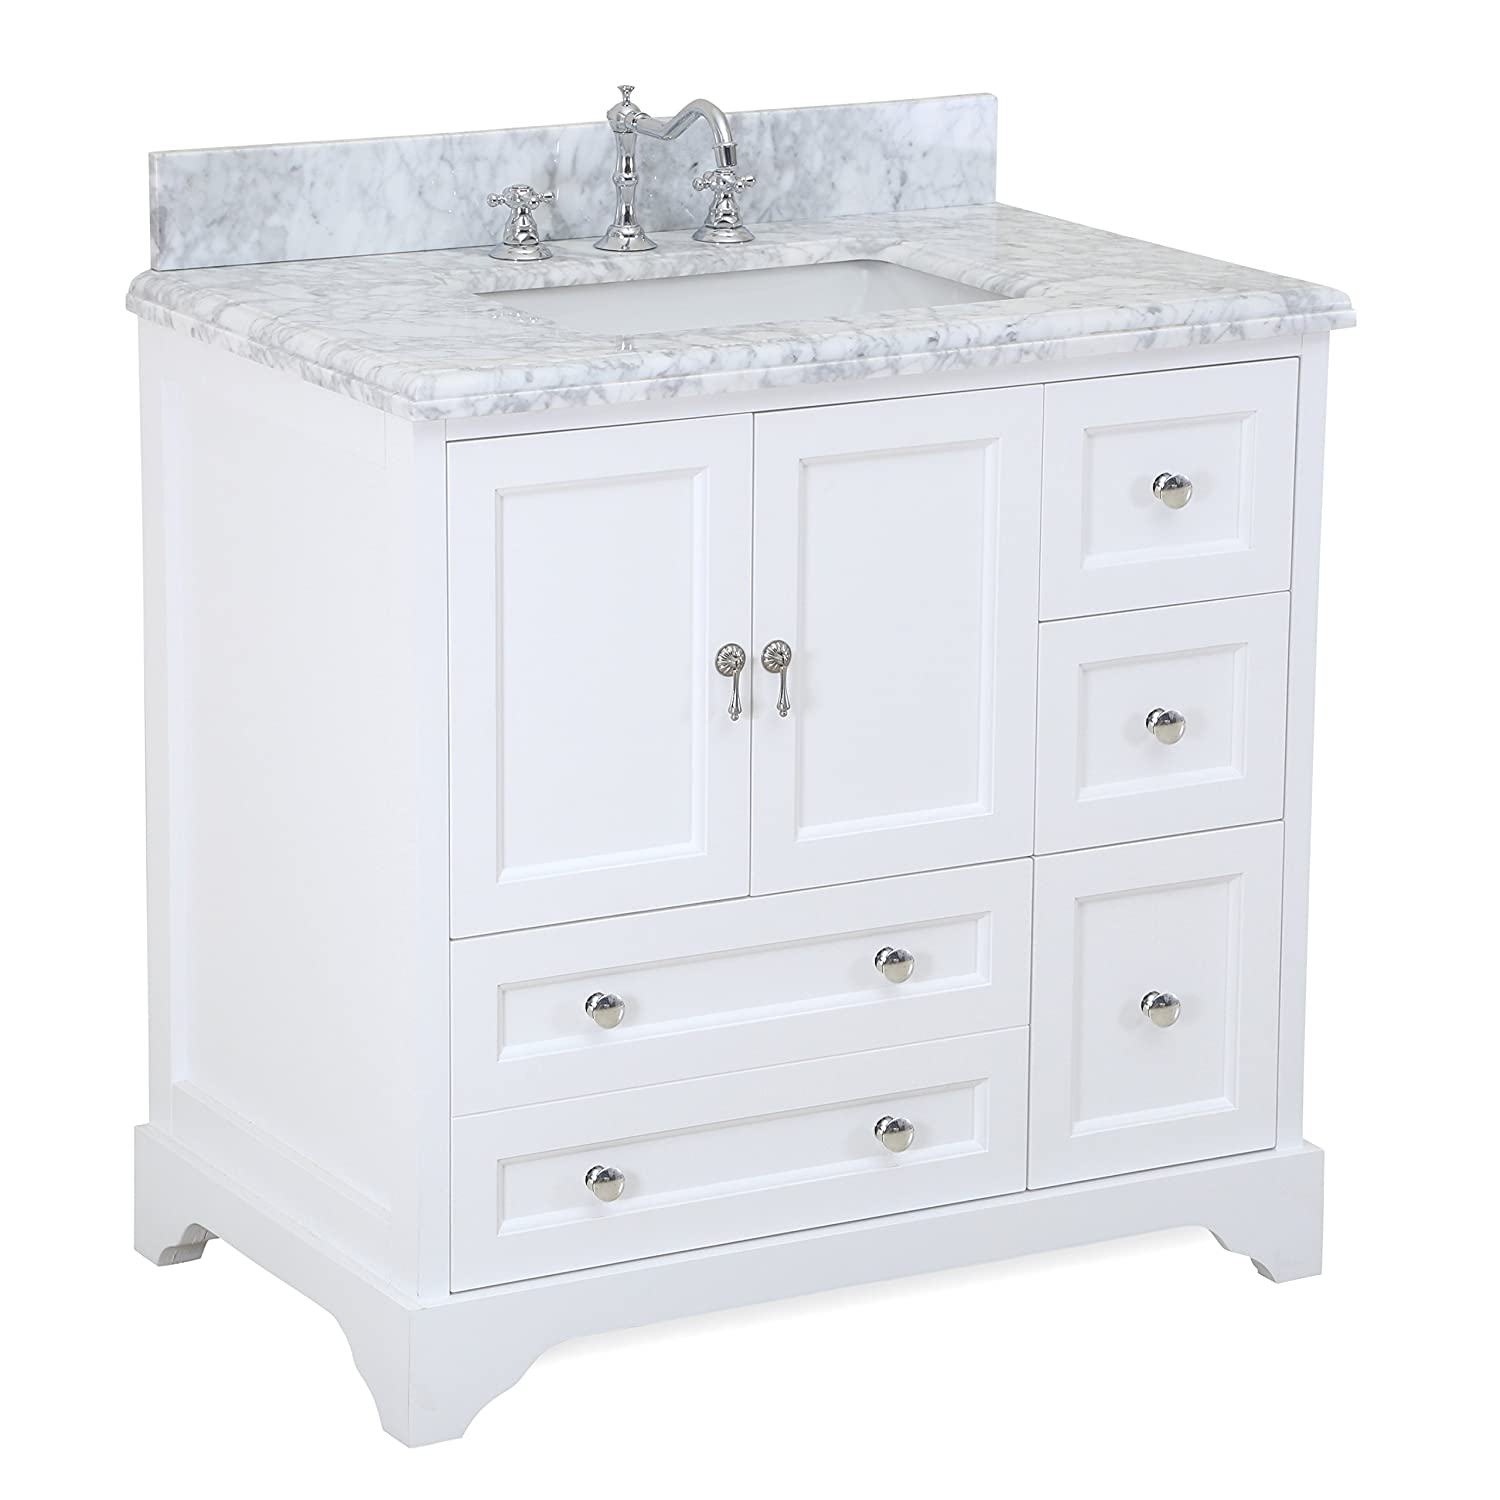 jonina single wayfair reviews drawers set drawer pdx home arlo interiors willa with bathroom improvement vanity